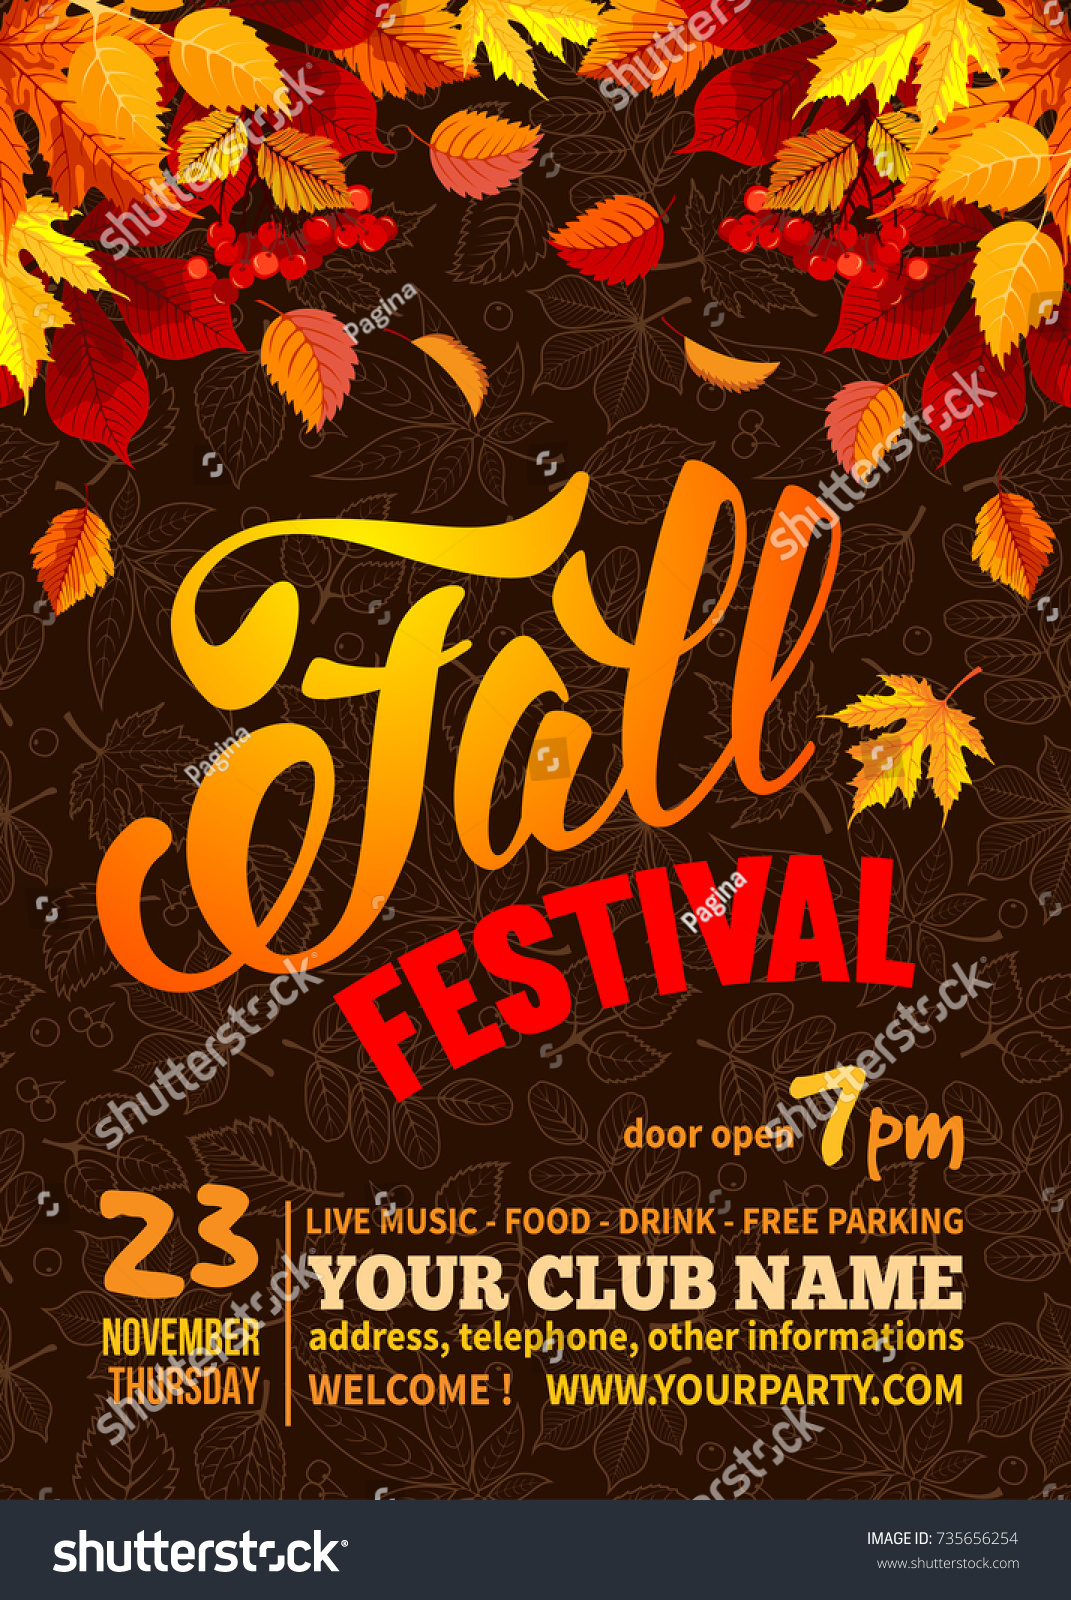 Fall Festival Flyer Or Poster Template. Bright Autumn Leaves On Dark  Background With Line Art